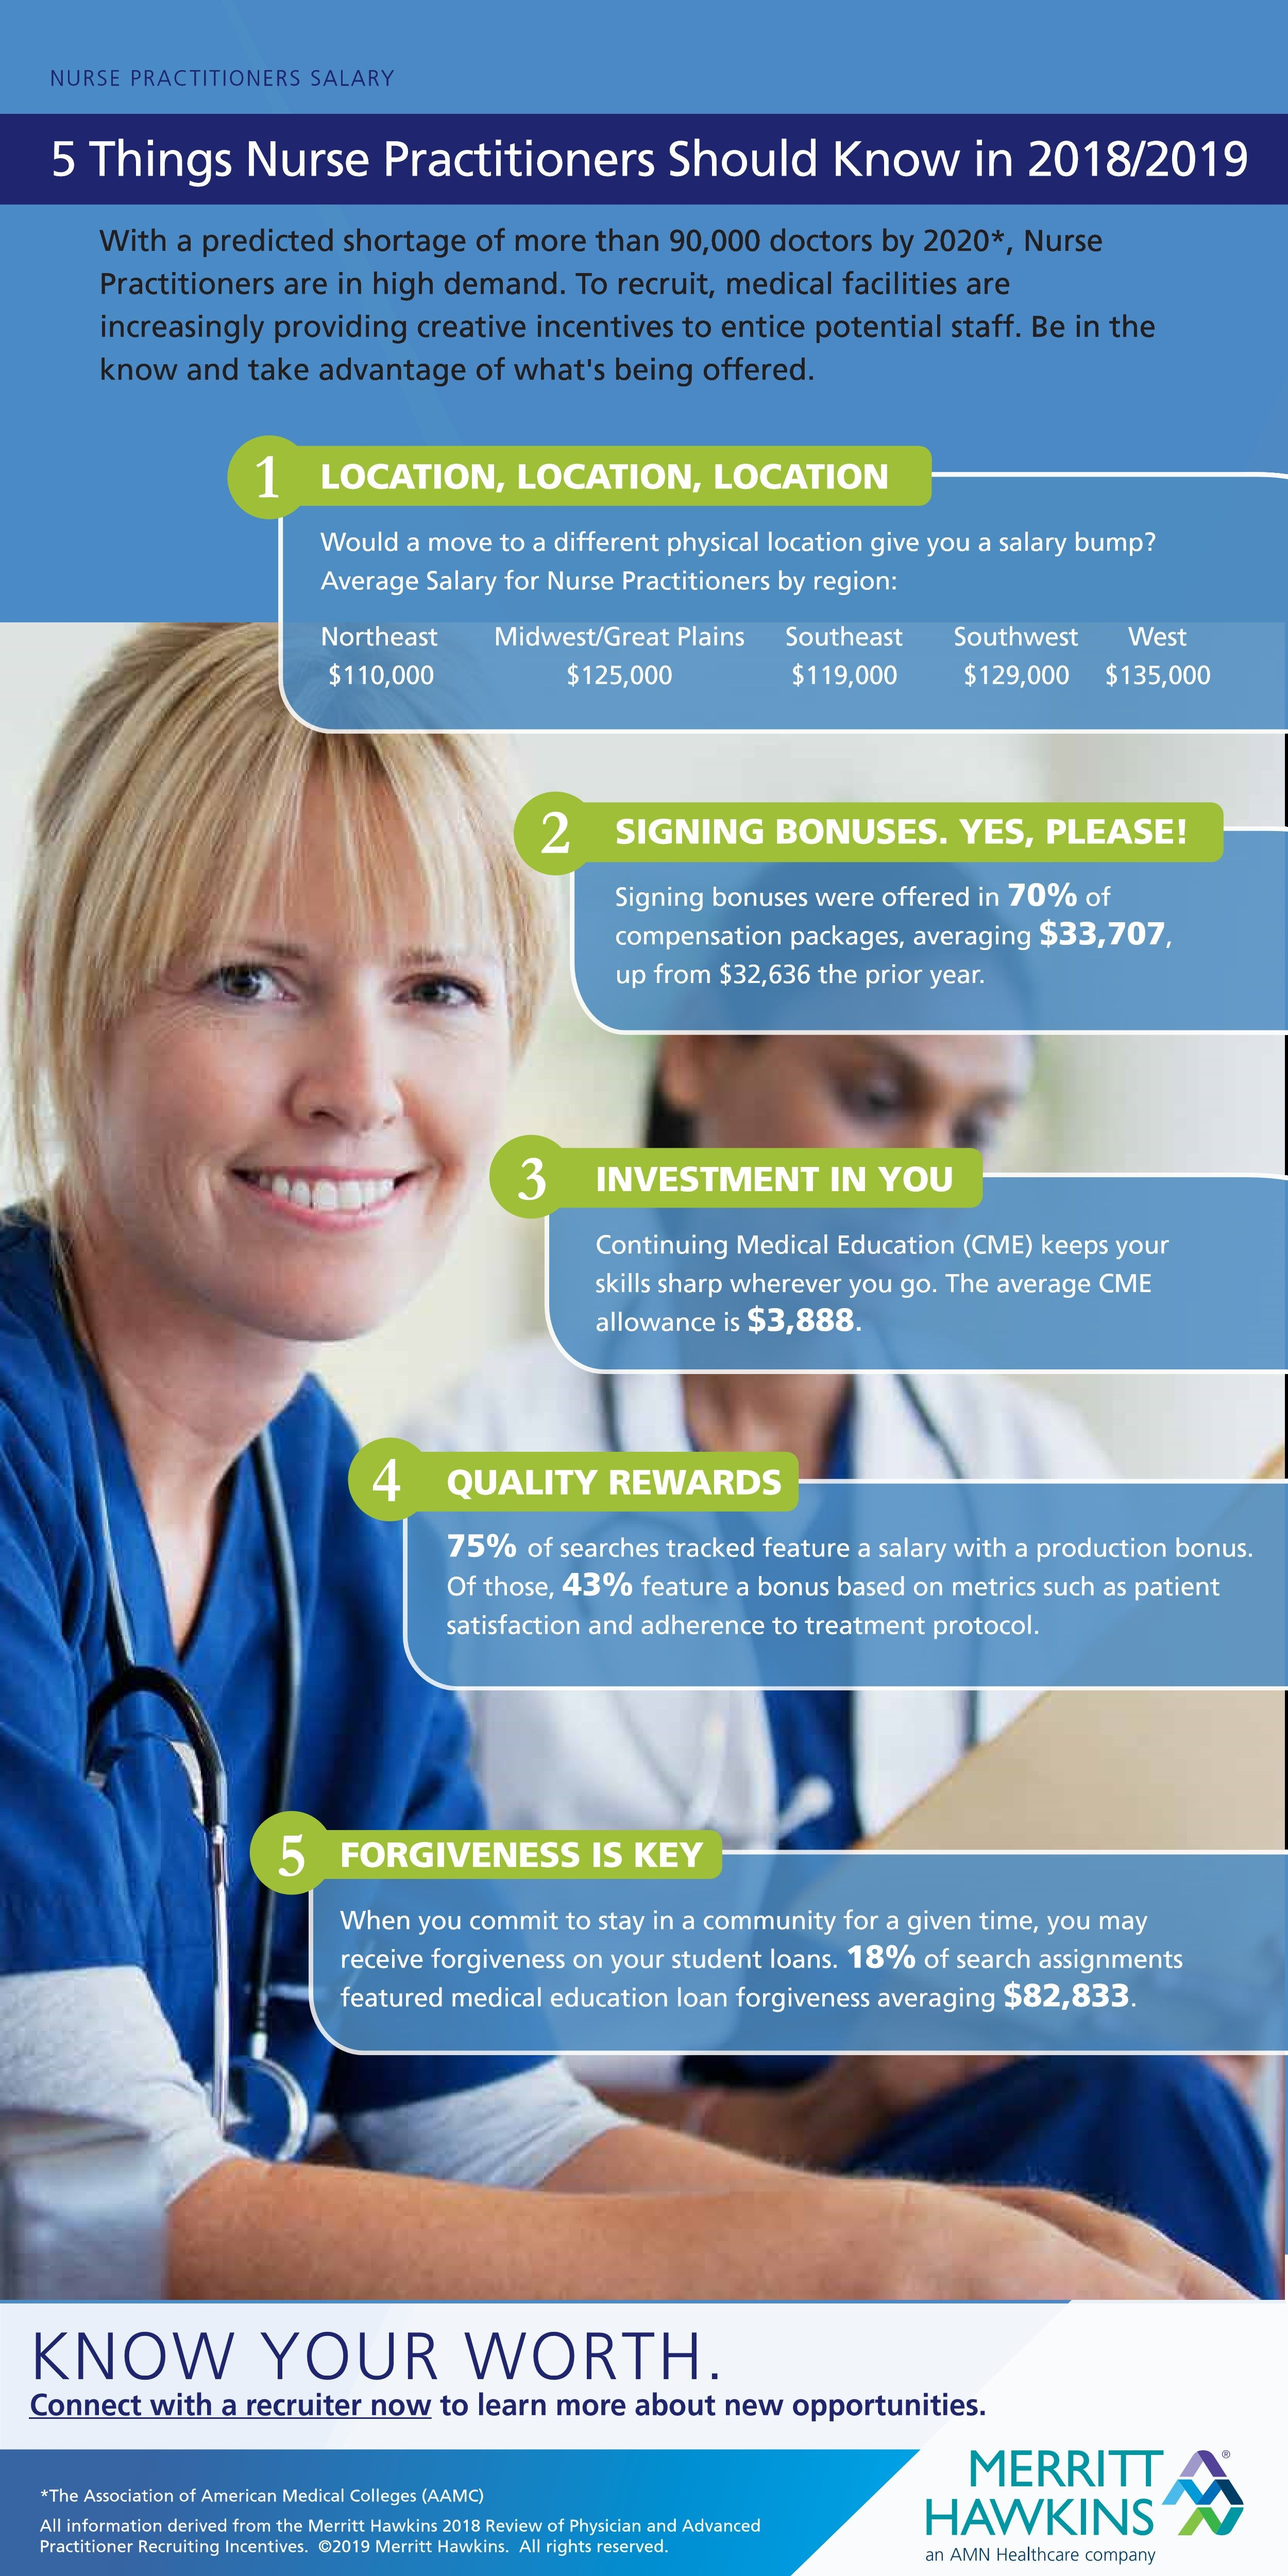 Happy Npweek As Demand For Nurse Practitioners Increases Here Are The 5 Things To Know About Salaries And Incentives G Nurse Practitioner Practitioner Nurse